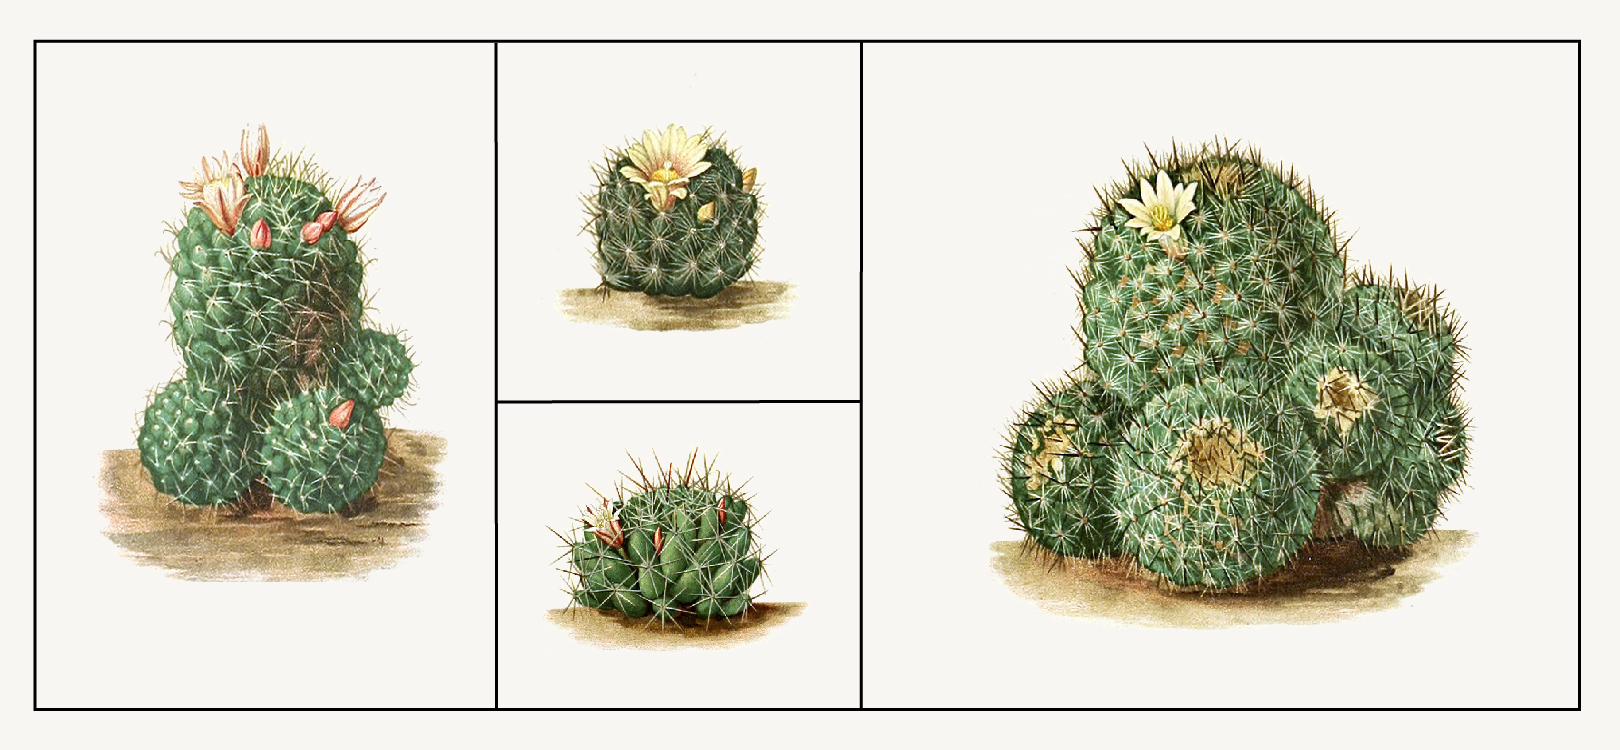 Cacti Terrariums: Online workshop and supply kit